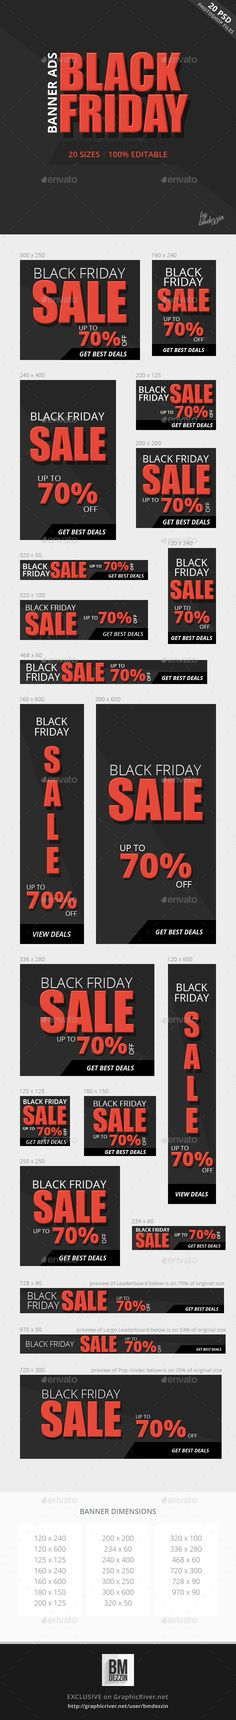 Black Friday Banner Ads Template PSD | Buy and Download: http://graphicriver.net/item/black-friday-banner-ads/9452451?WT.oss_phrase=&WT.oss_rank=8&WT.z_author=bmdezzin&WT.ac=search_thumb&ref=ksioks